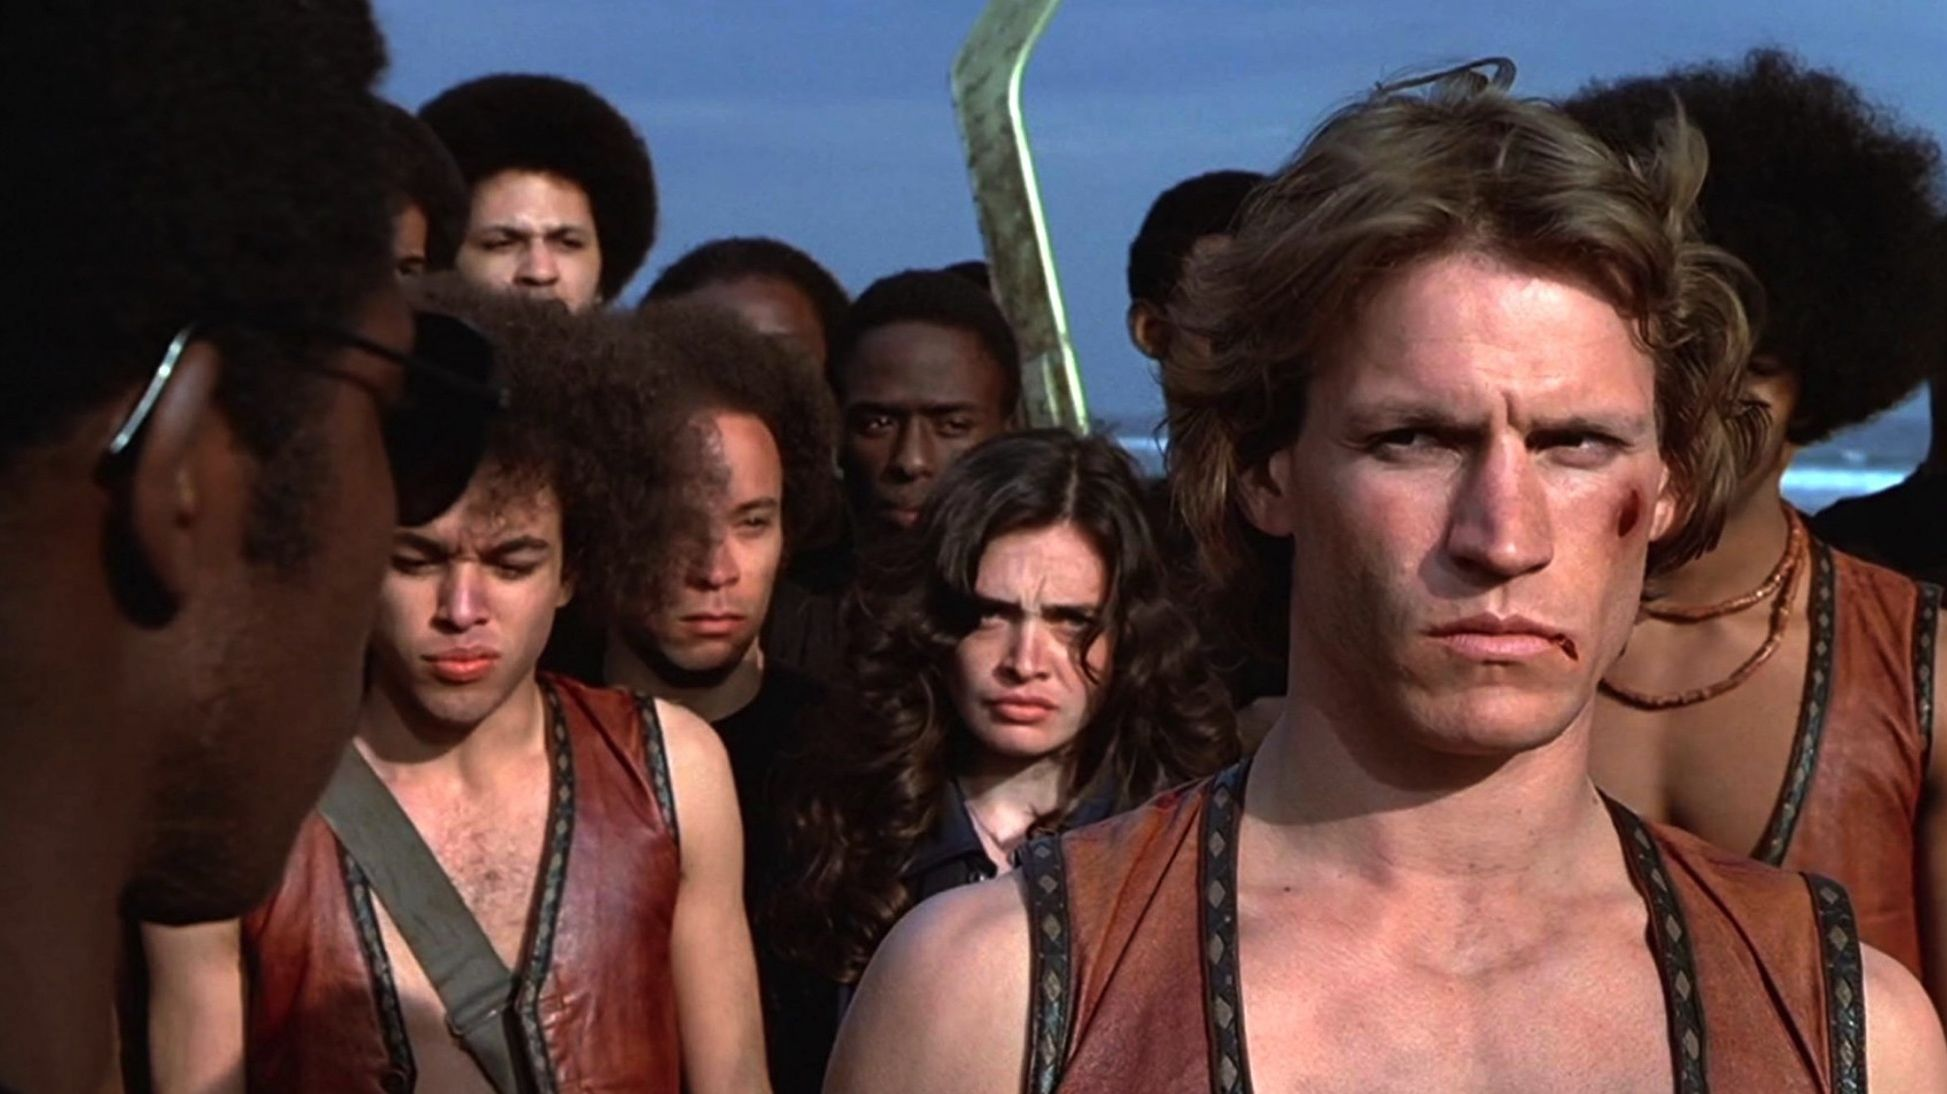 15 Things to Look the Next Time You Watch The Warriors